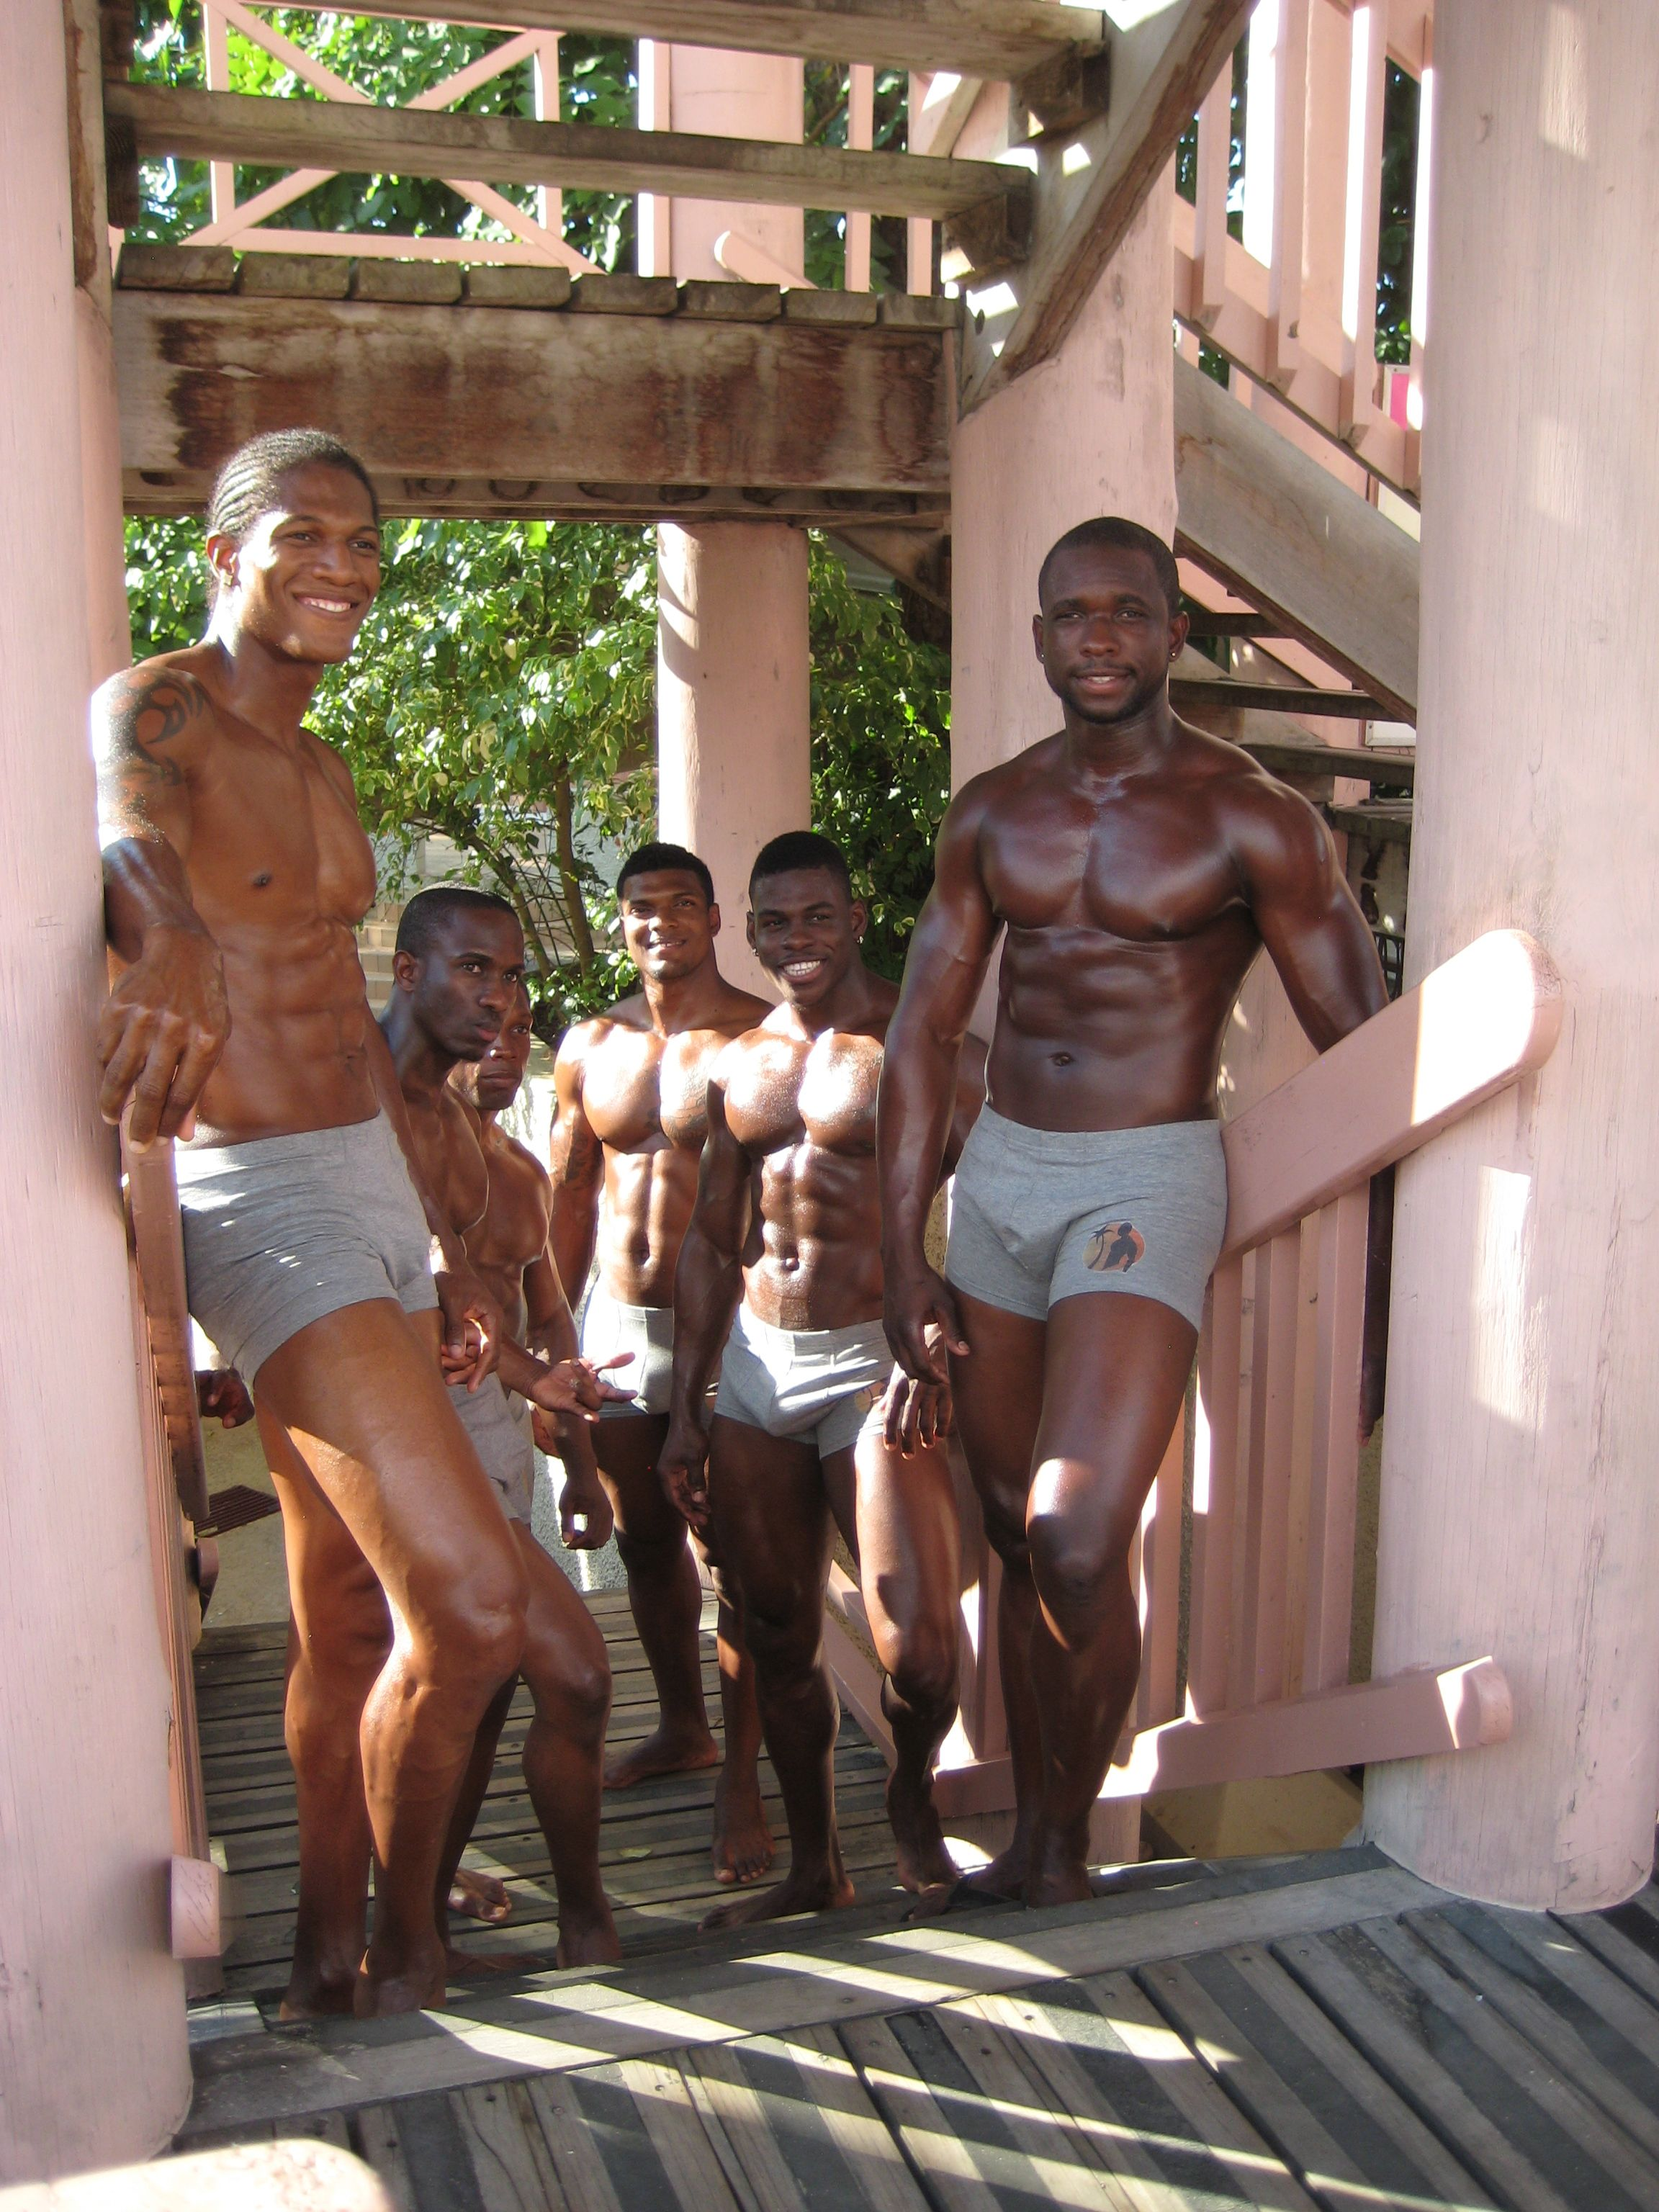 Mr Caribbean Contest 2013 At Hedonism Ii Resort Negril Jamaica